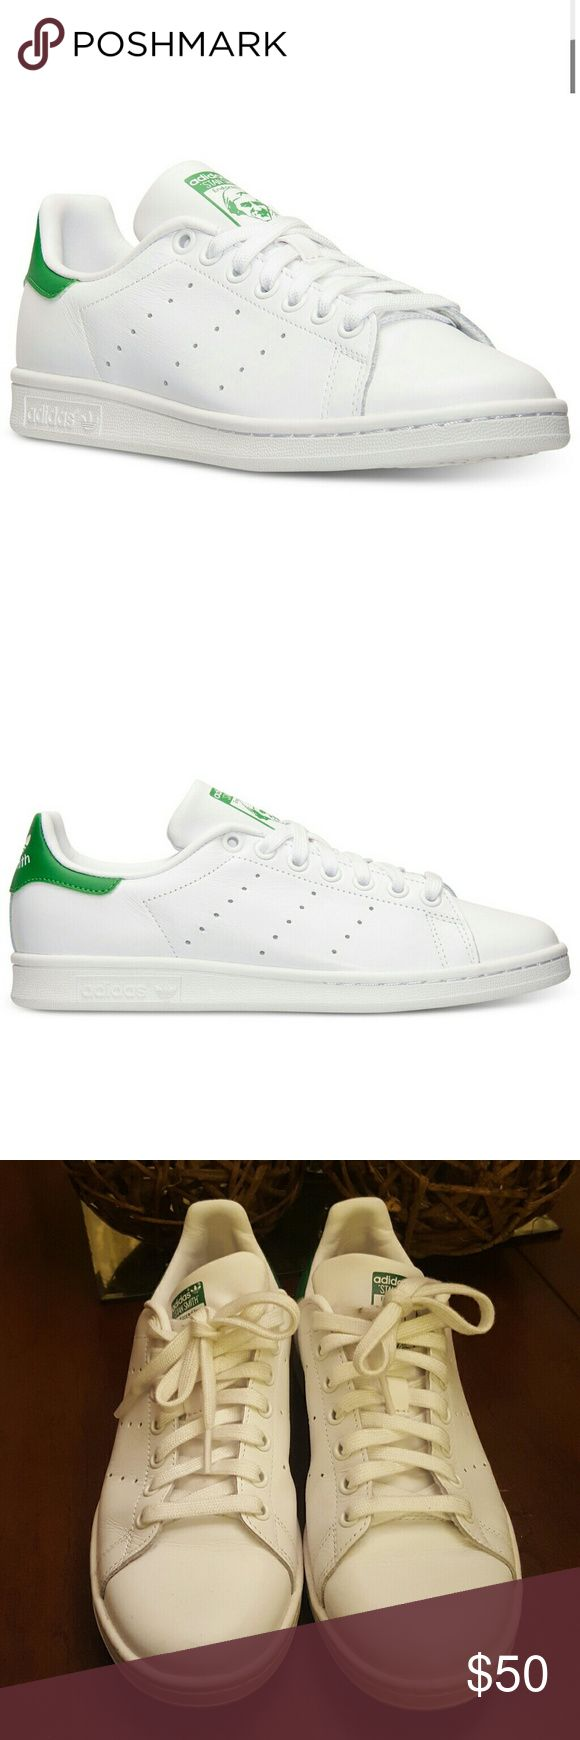 Adidas Stan Smith Sneakers Adidas Stan Smith sneakers in classic white with green accents. Original colorway. Excellent condition with a few scuffs here and there; light stains at entry of shoe and on shoestrings but highly likely able to be removed with proper cleaning. Worn less than seven times! Adidas Shoes Sneakers